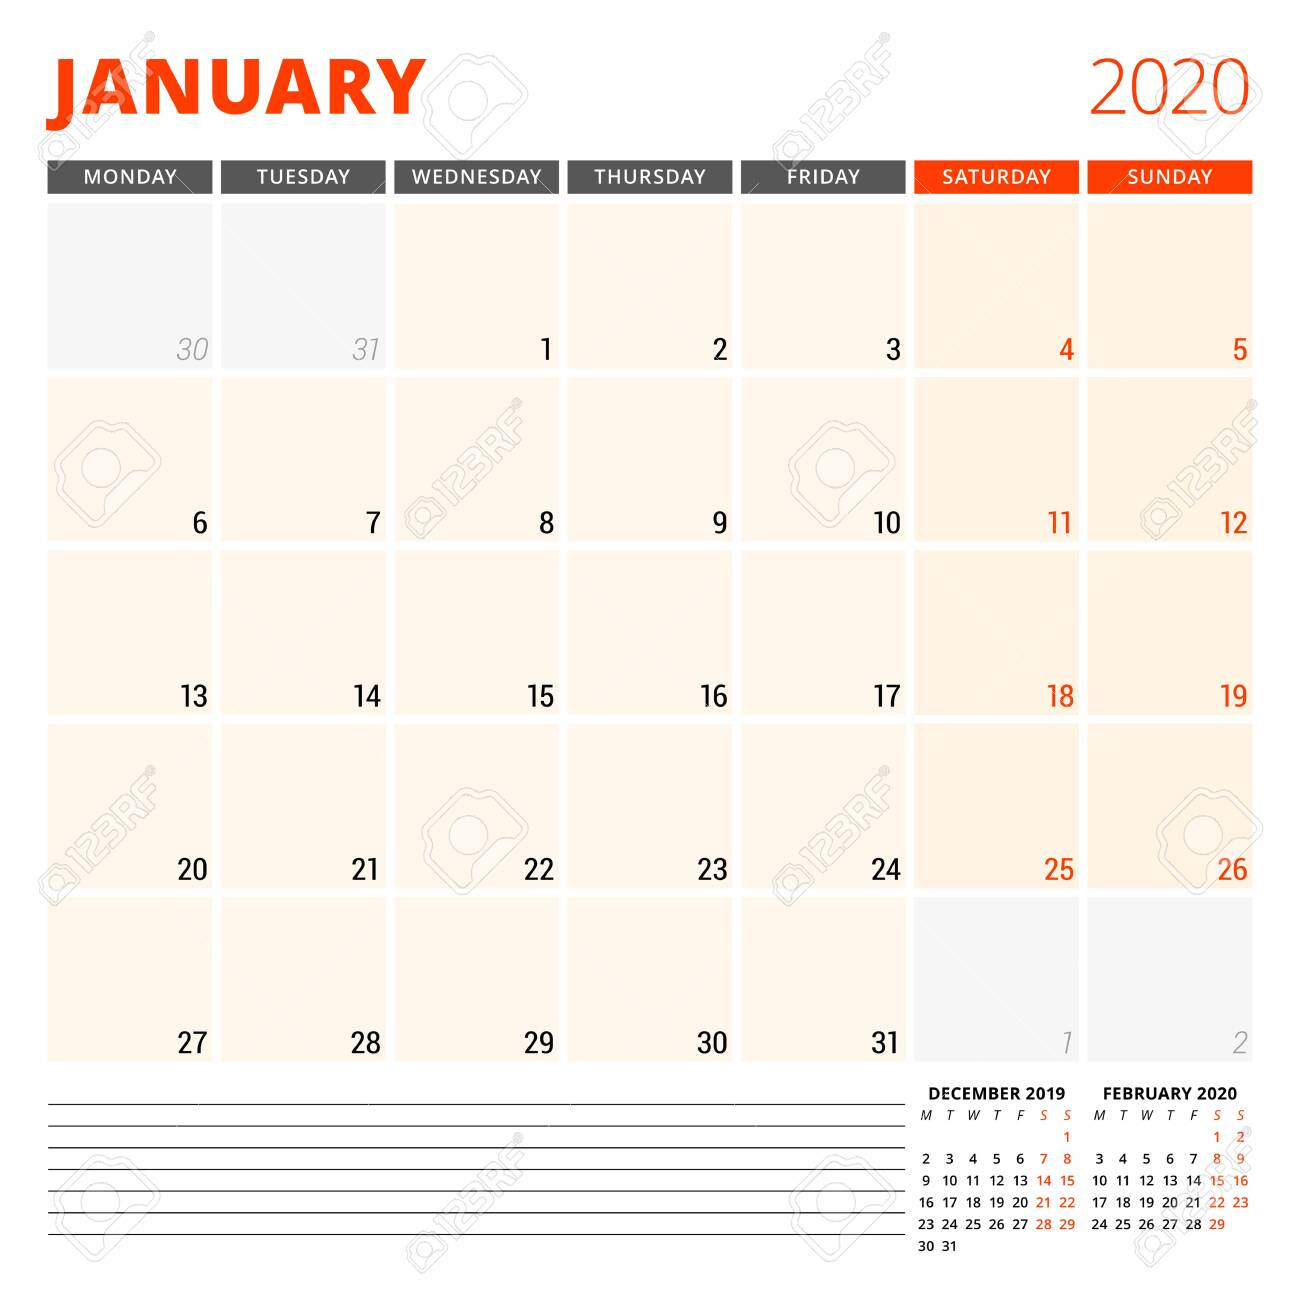 Calendar Planner For January 2020. Stationery Design Template